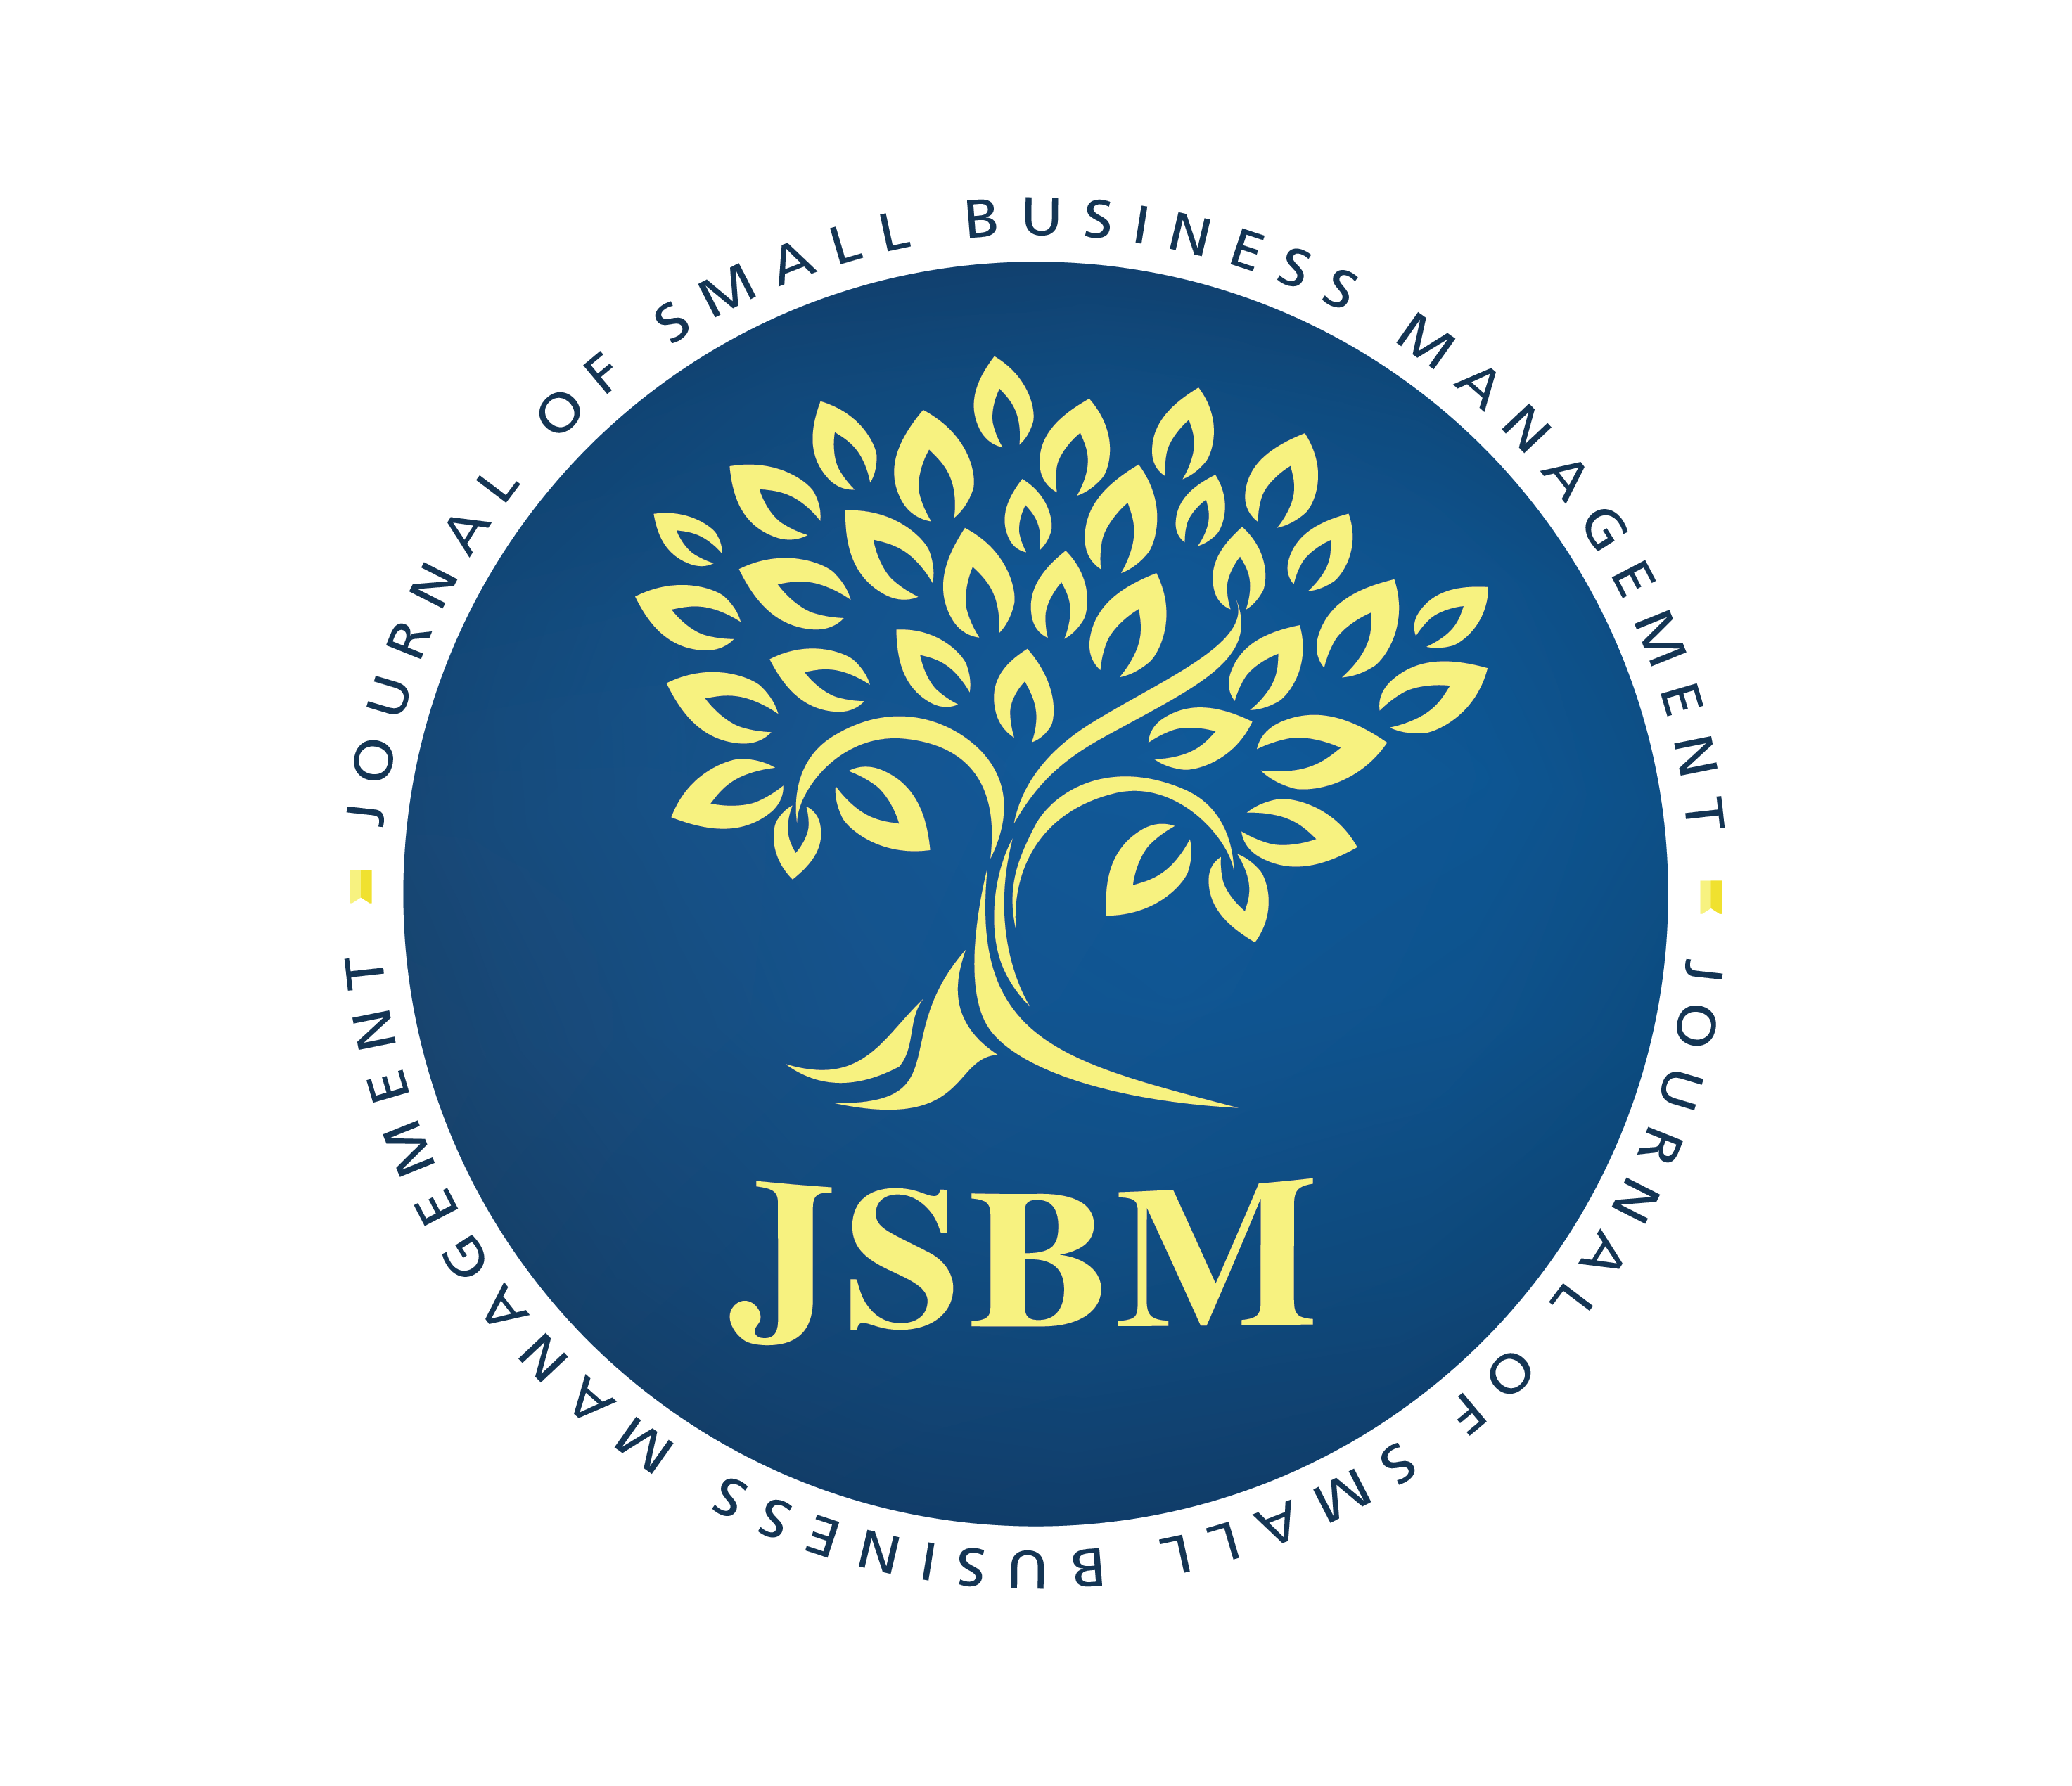 Journal of Small Business Management logo